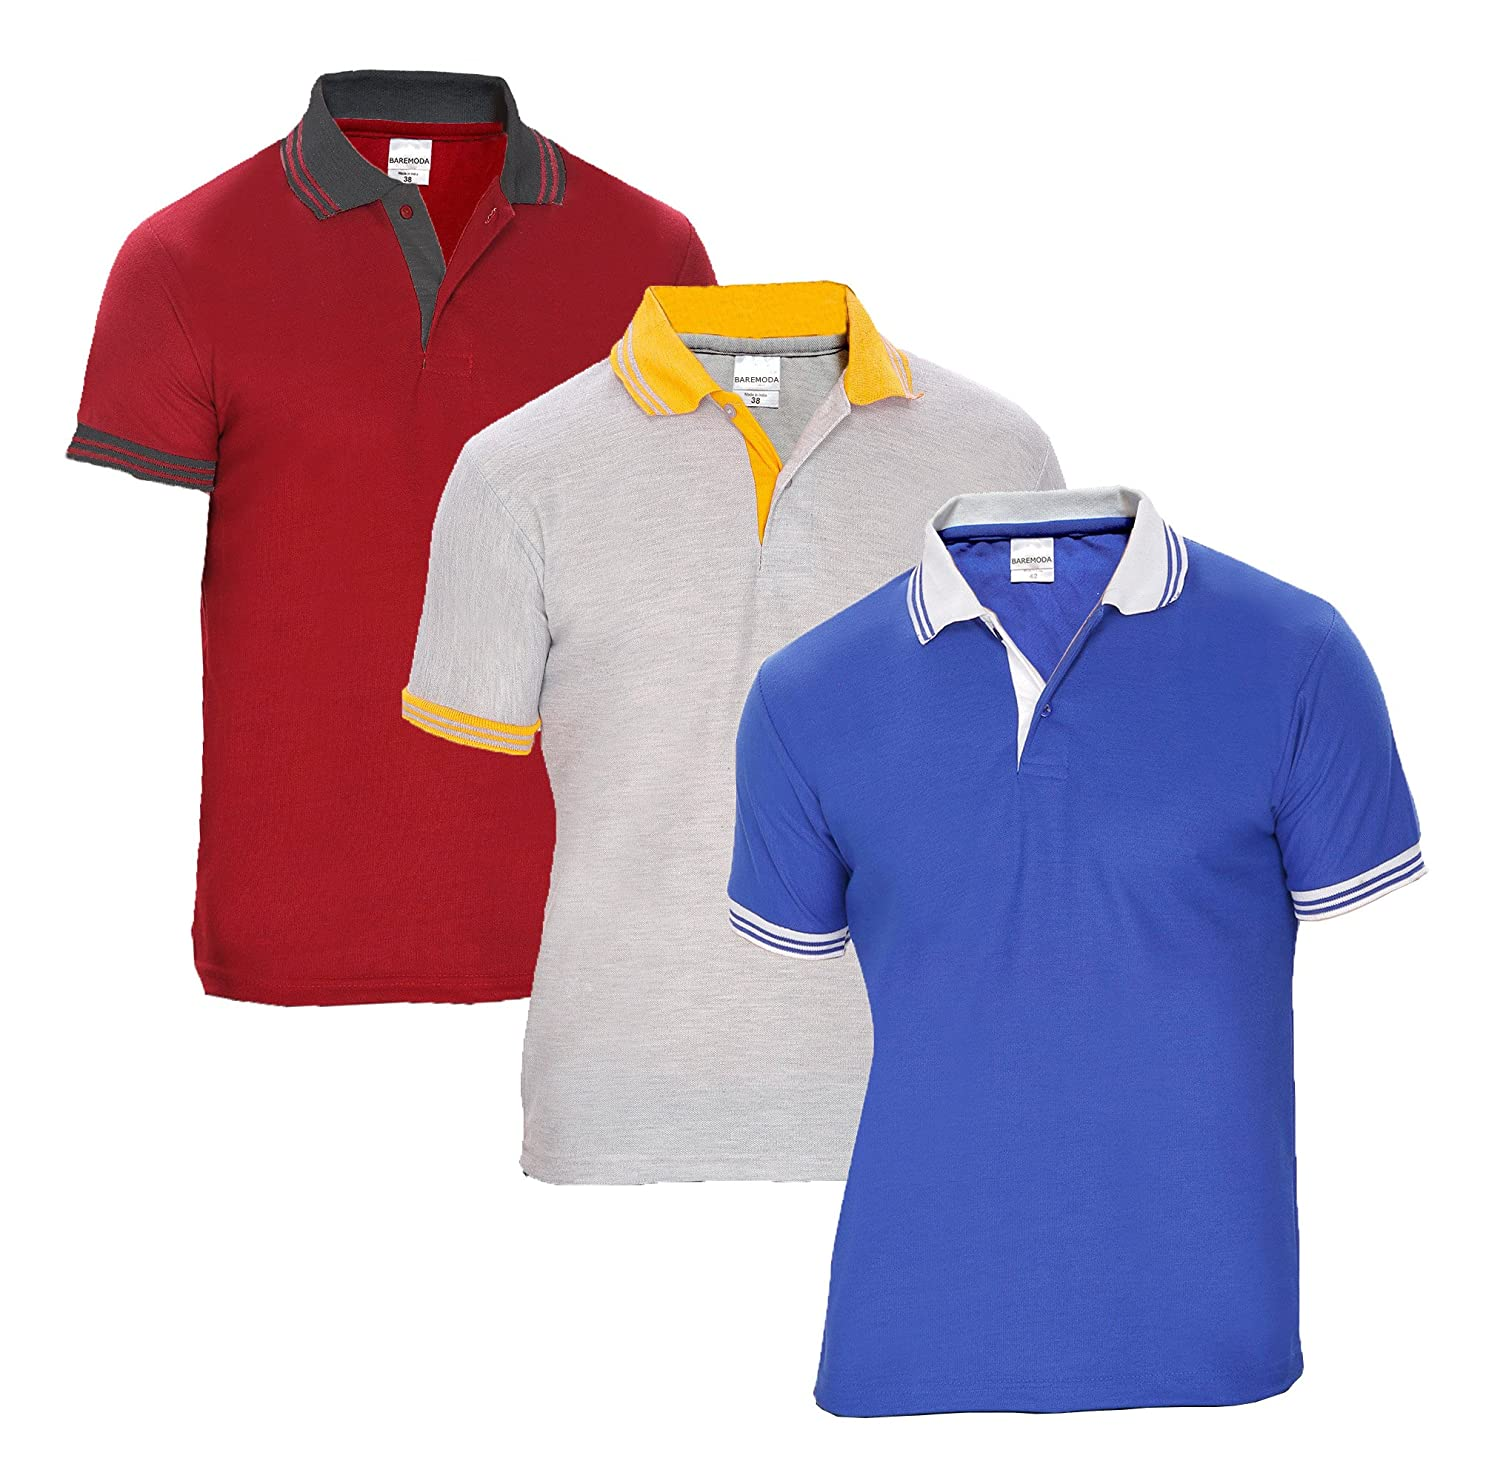 0fe9827f Baremoda Men's Polo T Shirt Blue Grey Maroon Combo Pack of 3: Amazon.in:  Clothing & Accessories